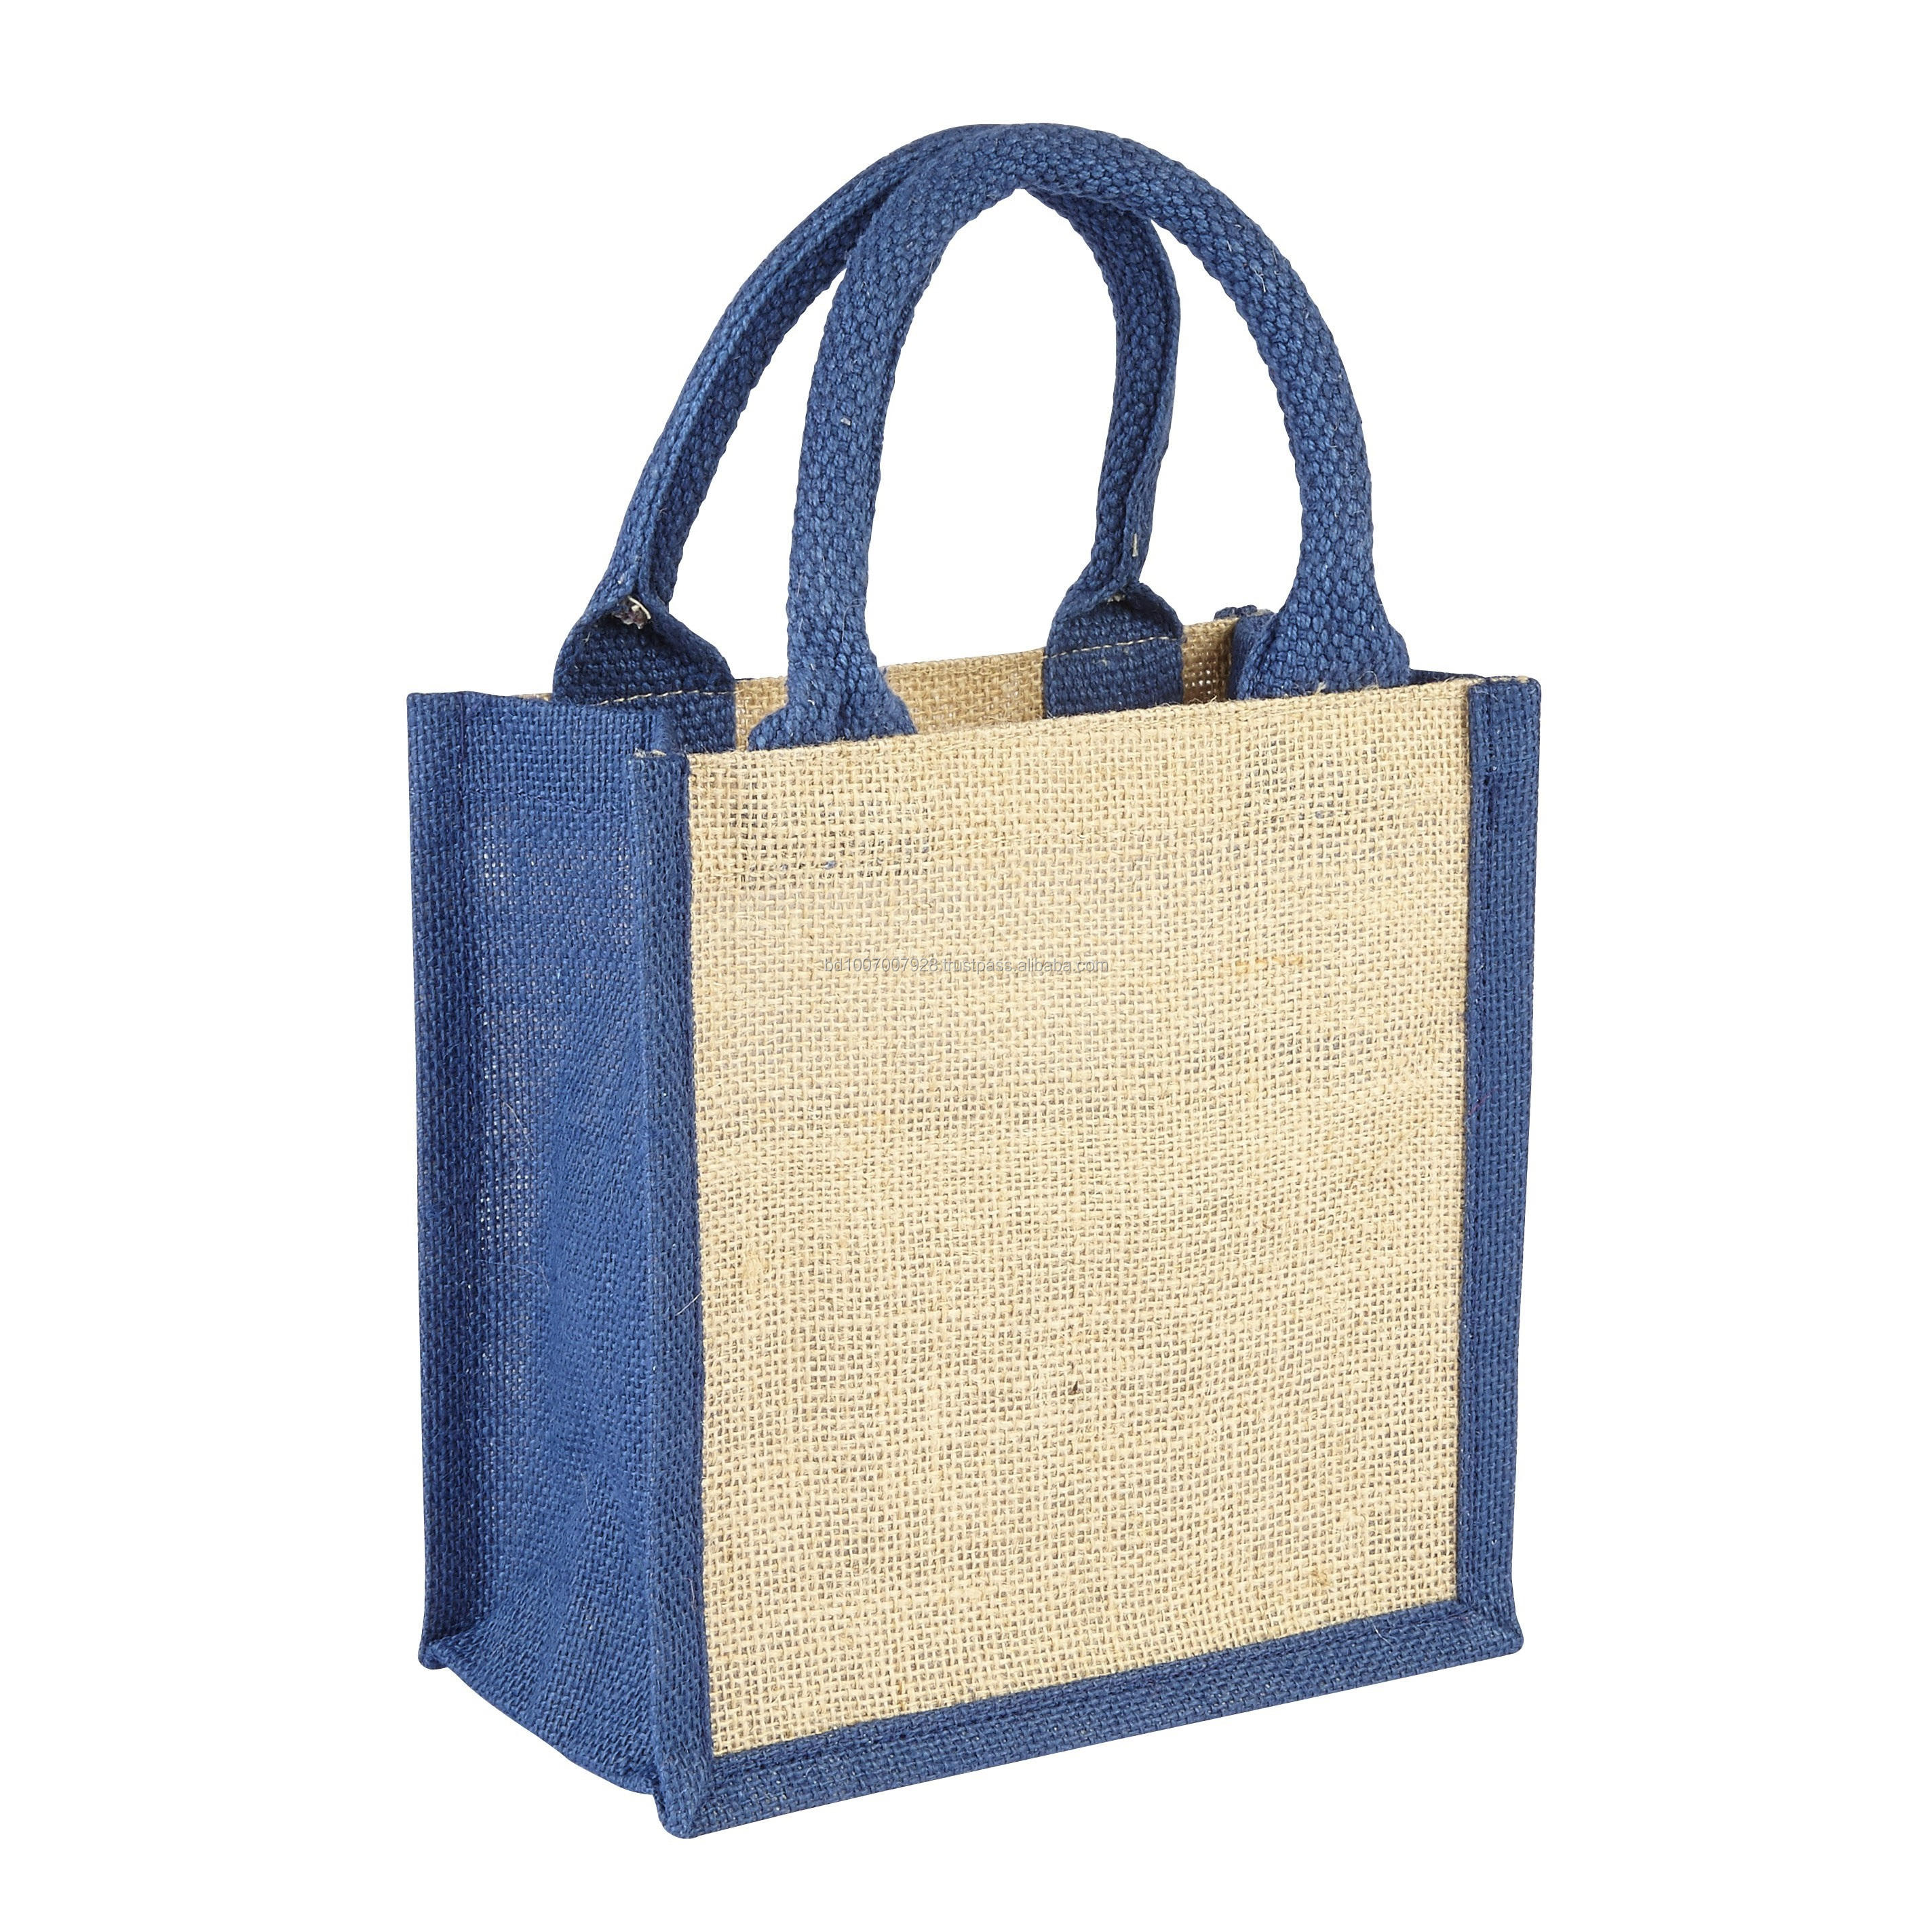 100% Export Quality Cheap Price Reusable Jute Fashion Shopping Lunch Bag From Bangladesh